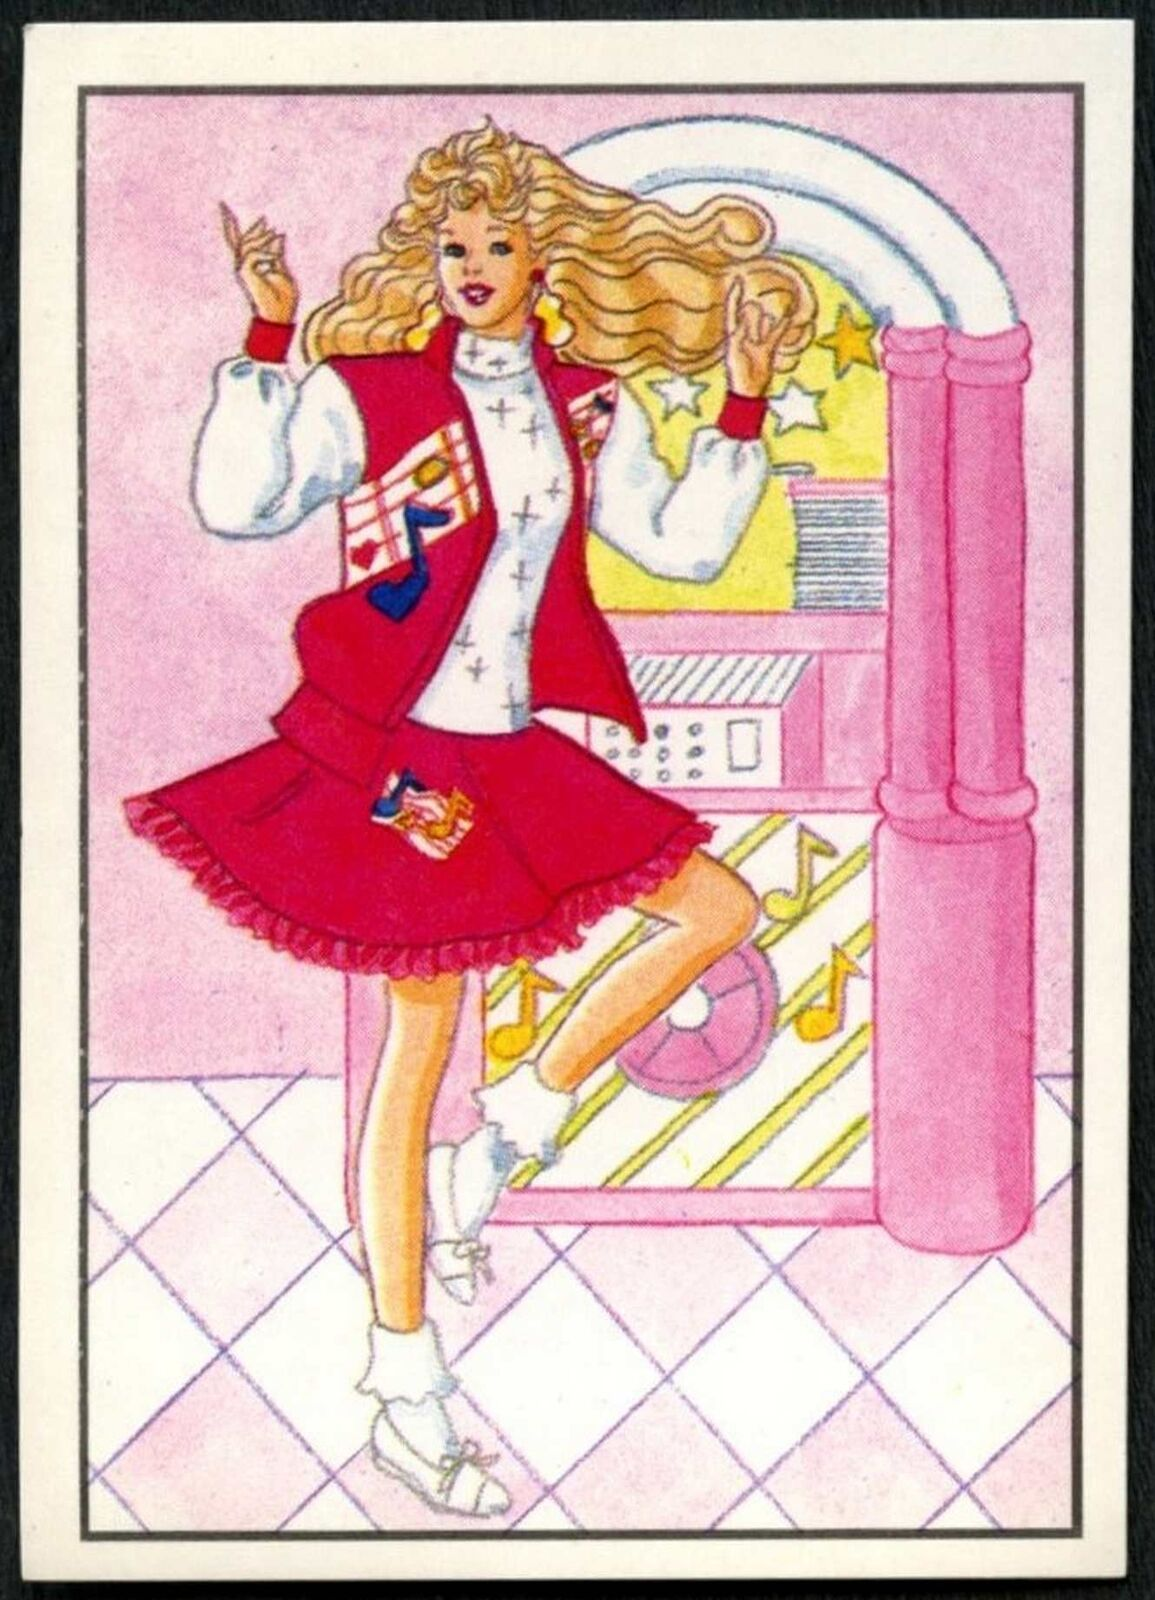 C858 Barbie #59 Mattel 1989 Panini Sticker